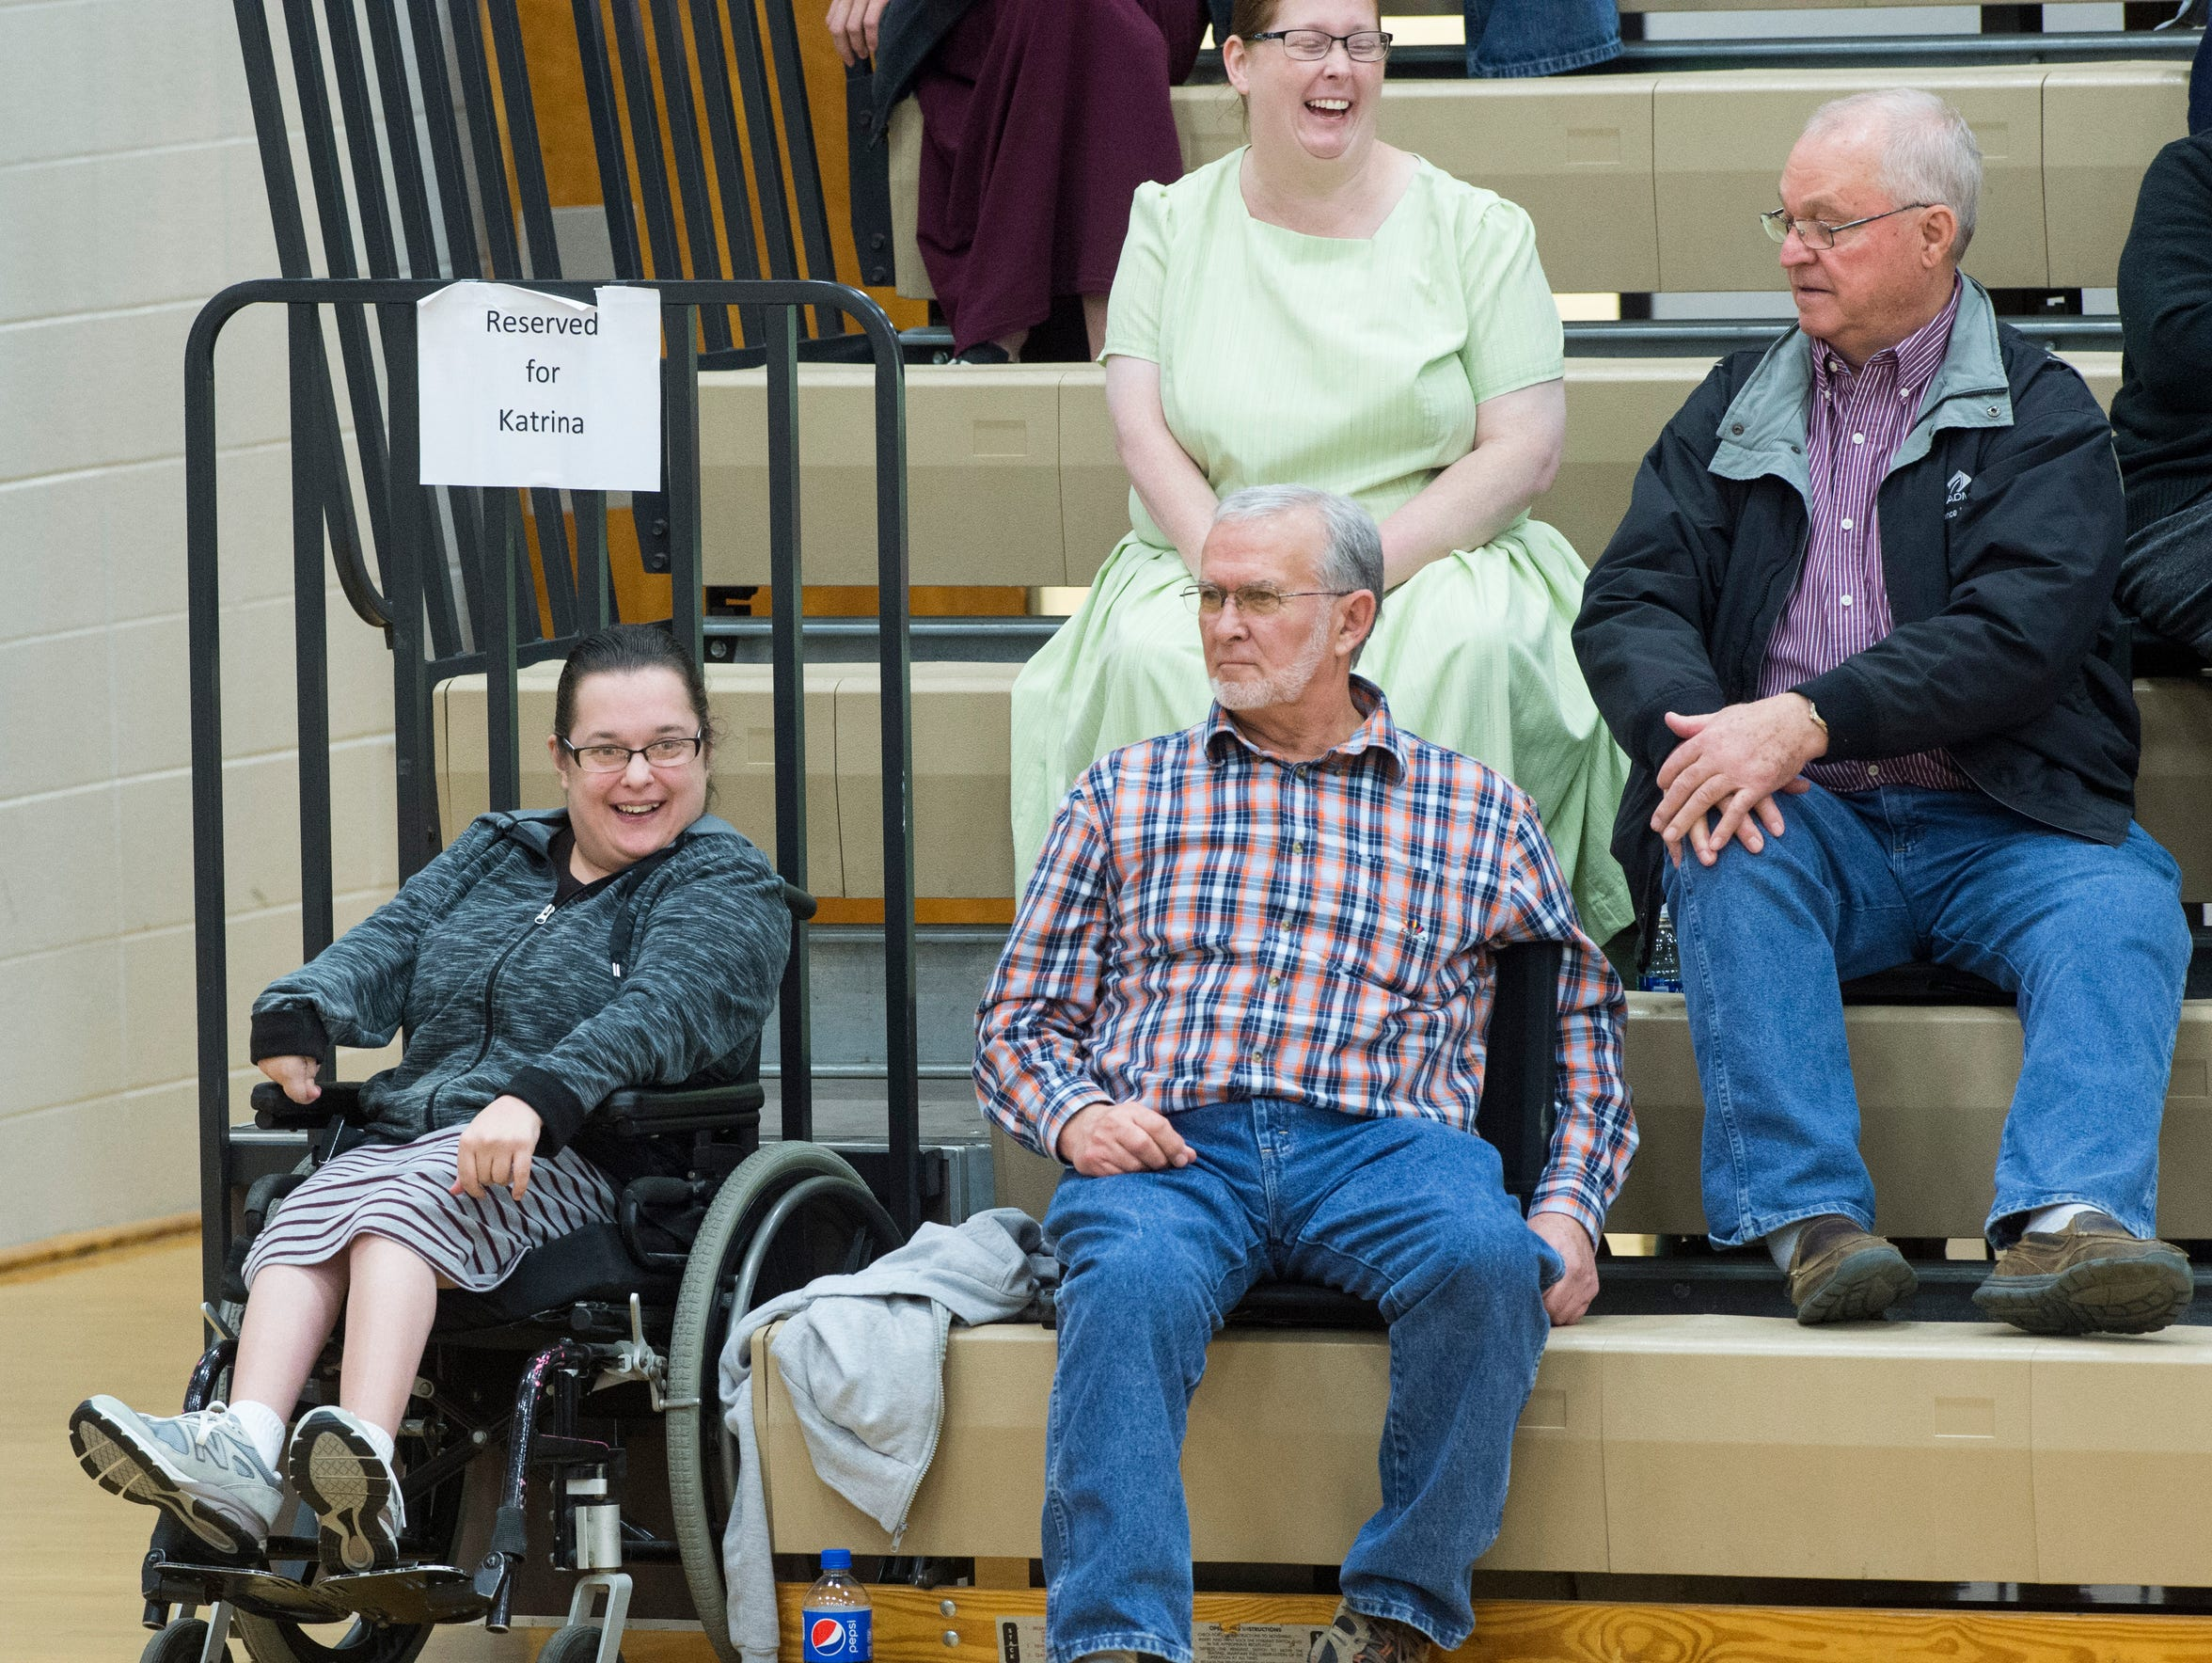 Katrina Wagler, left and her dad Marvin enjoy the game from their reserved seats at North Daviess High School on Friday, Feb. 16, 2018. North Daviess defeated White River Valley 38-23.